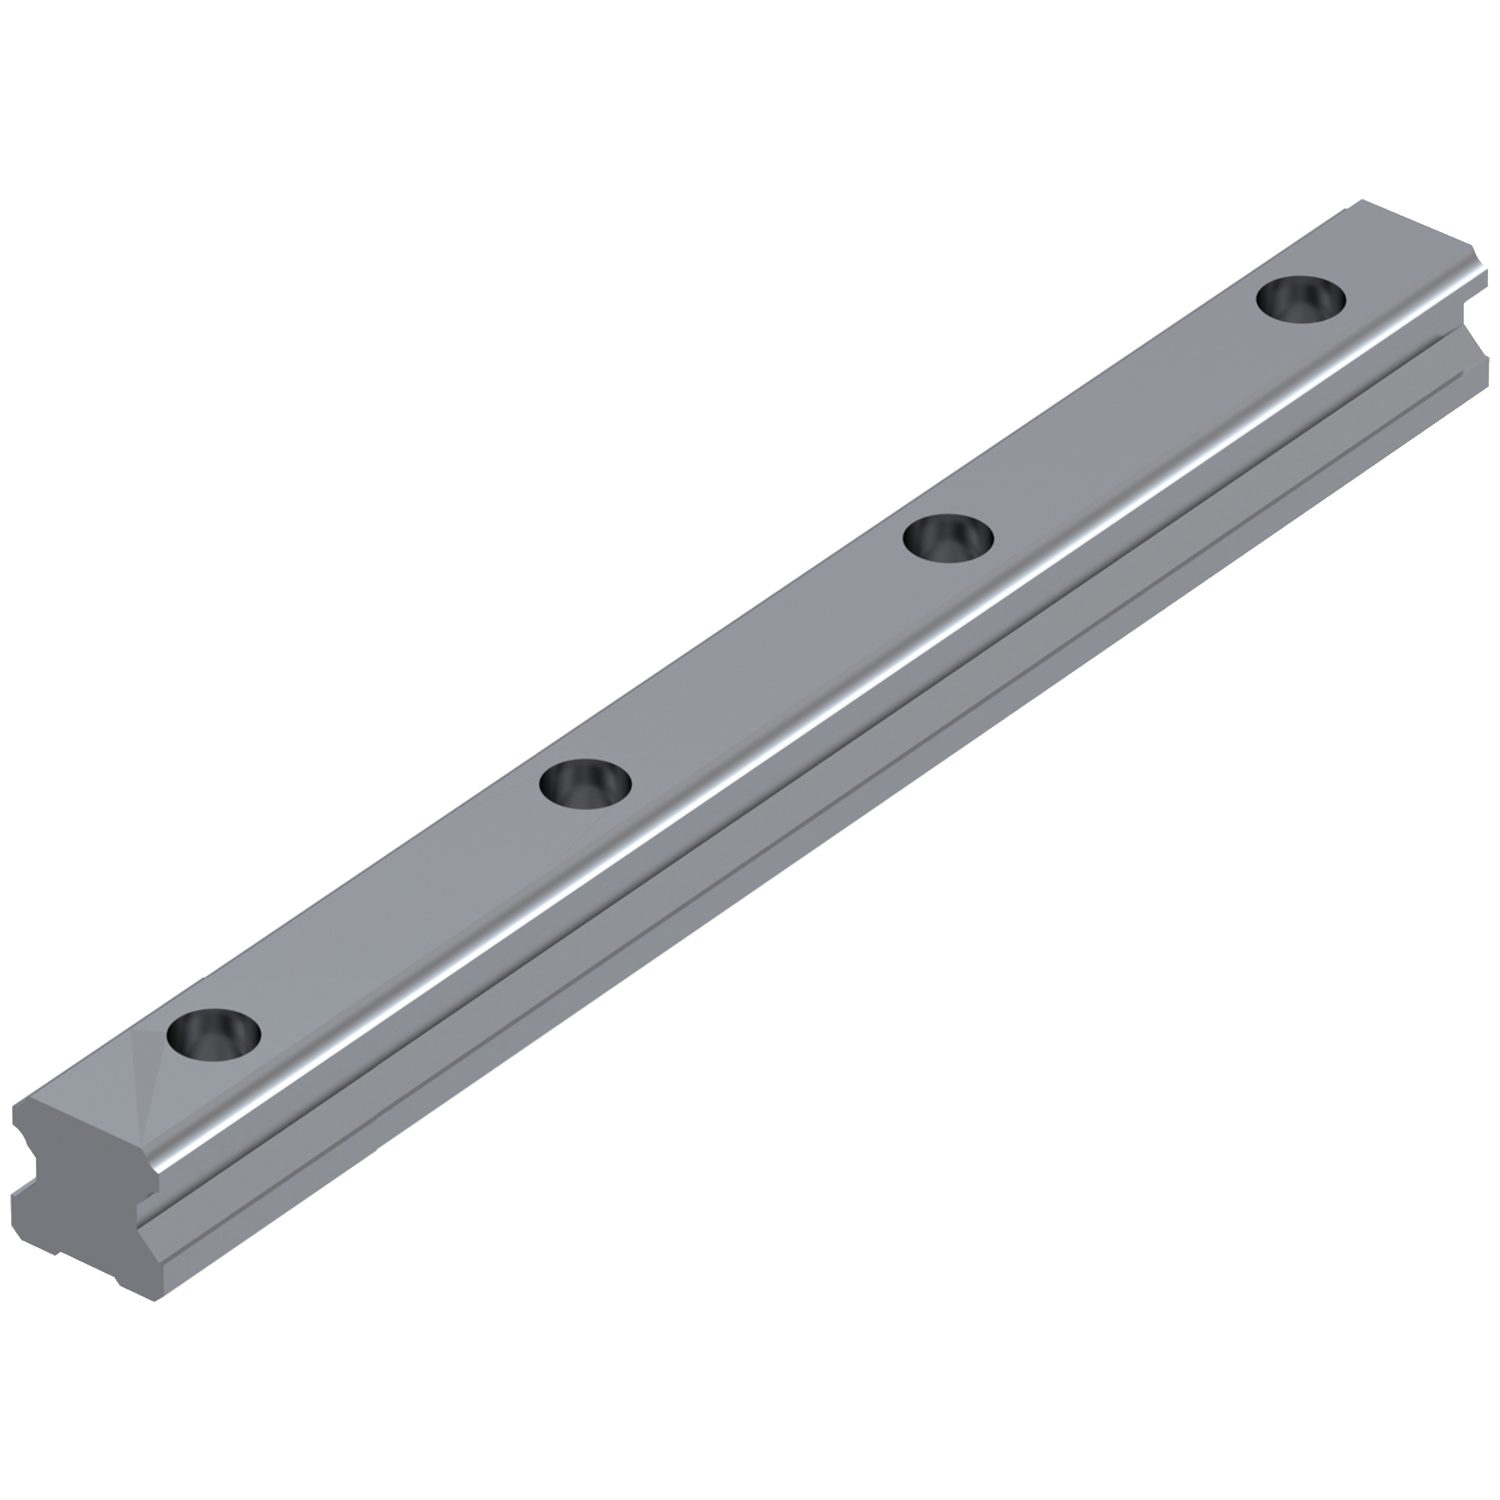 L1016.35 - 35mm Linear Guide Rail